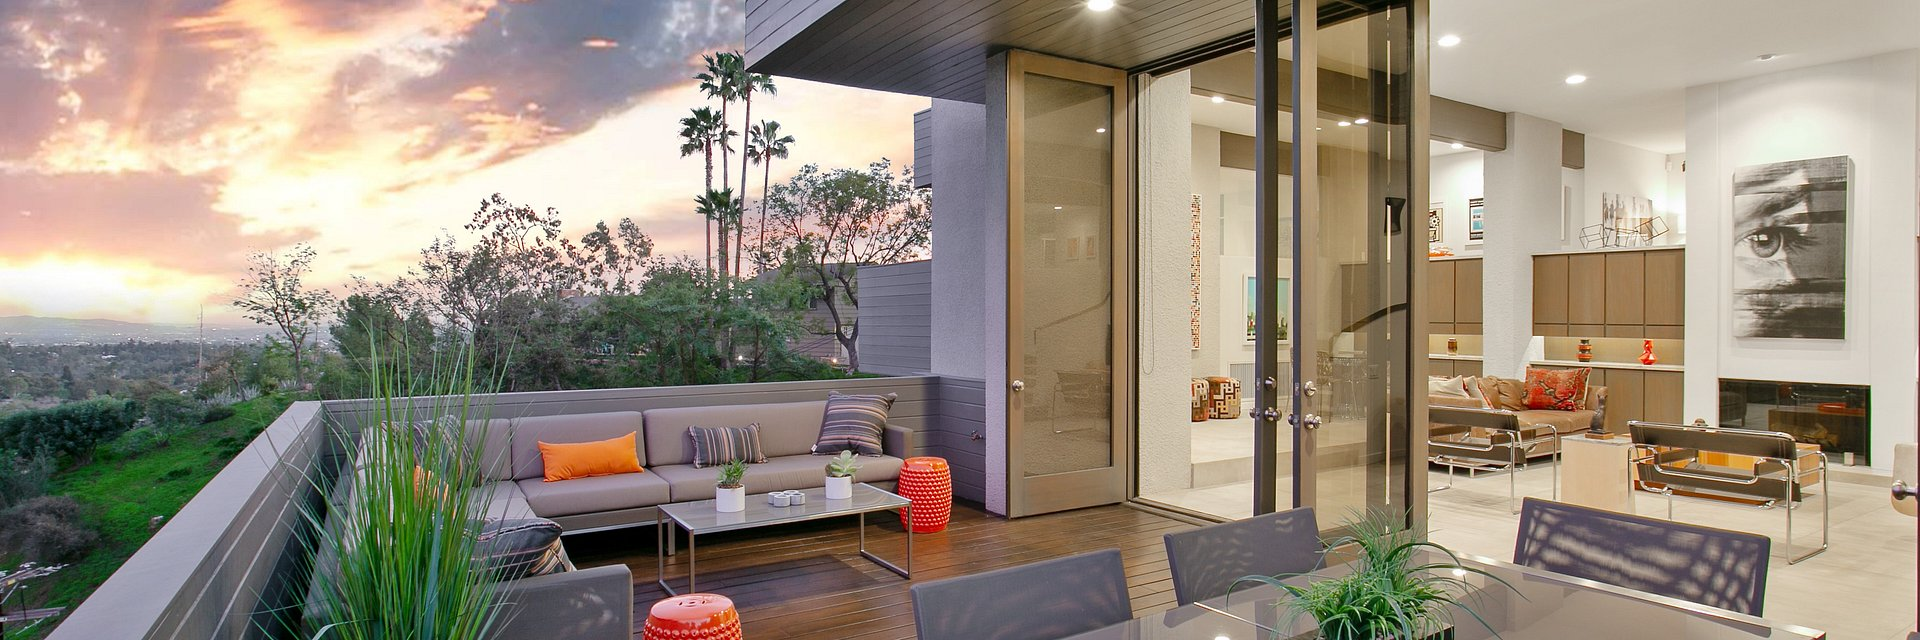 Coldwell Banker Residential Brokerage Lists Pasadena Property Designed by Conrad Buff & Don Hensman for $2.295 Million